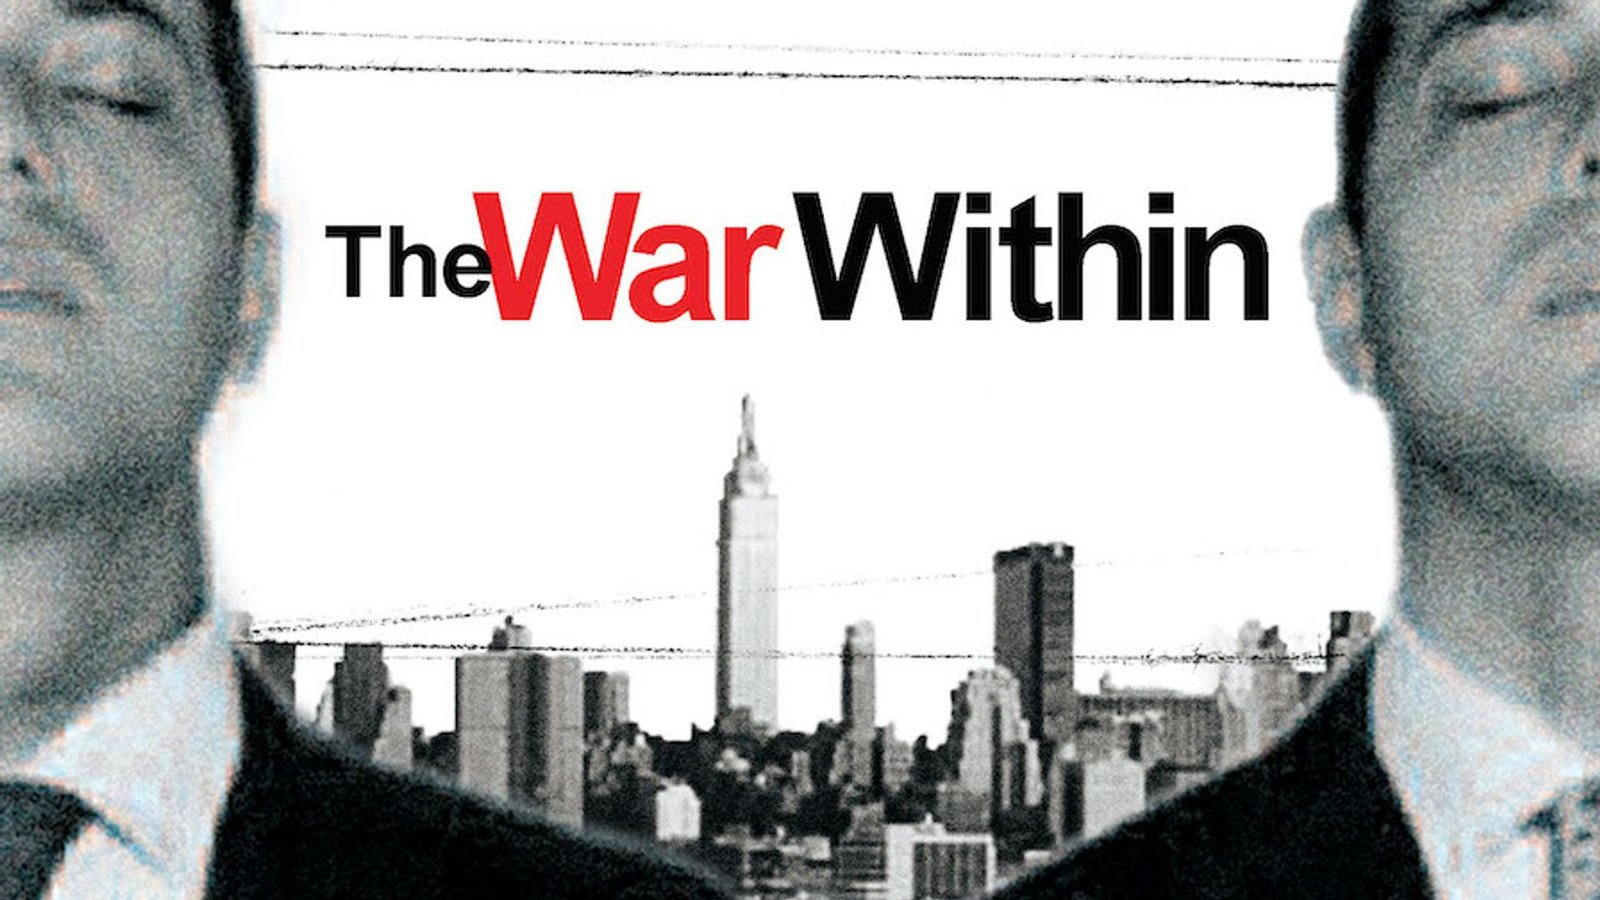 The War Within